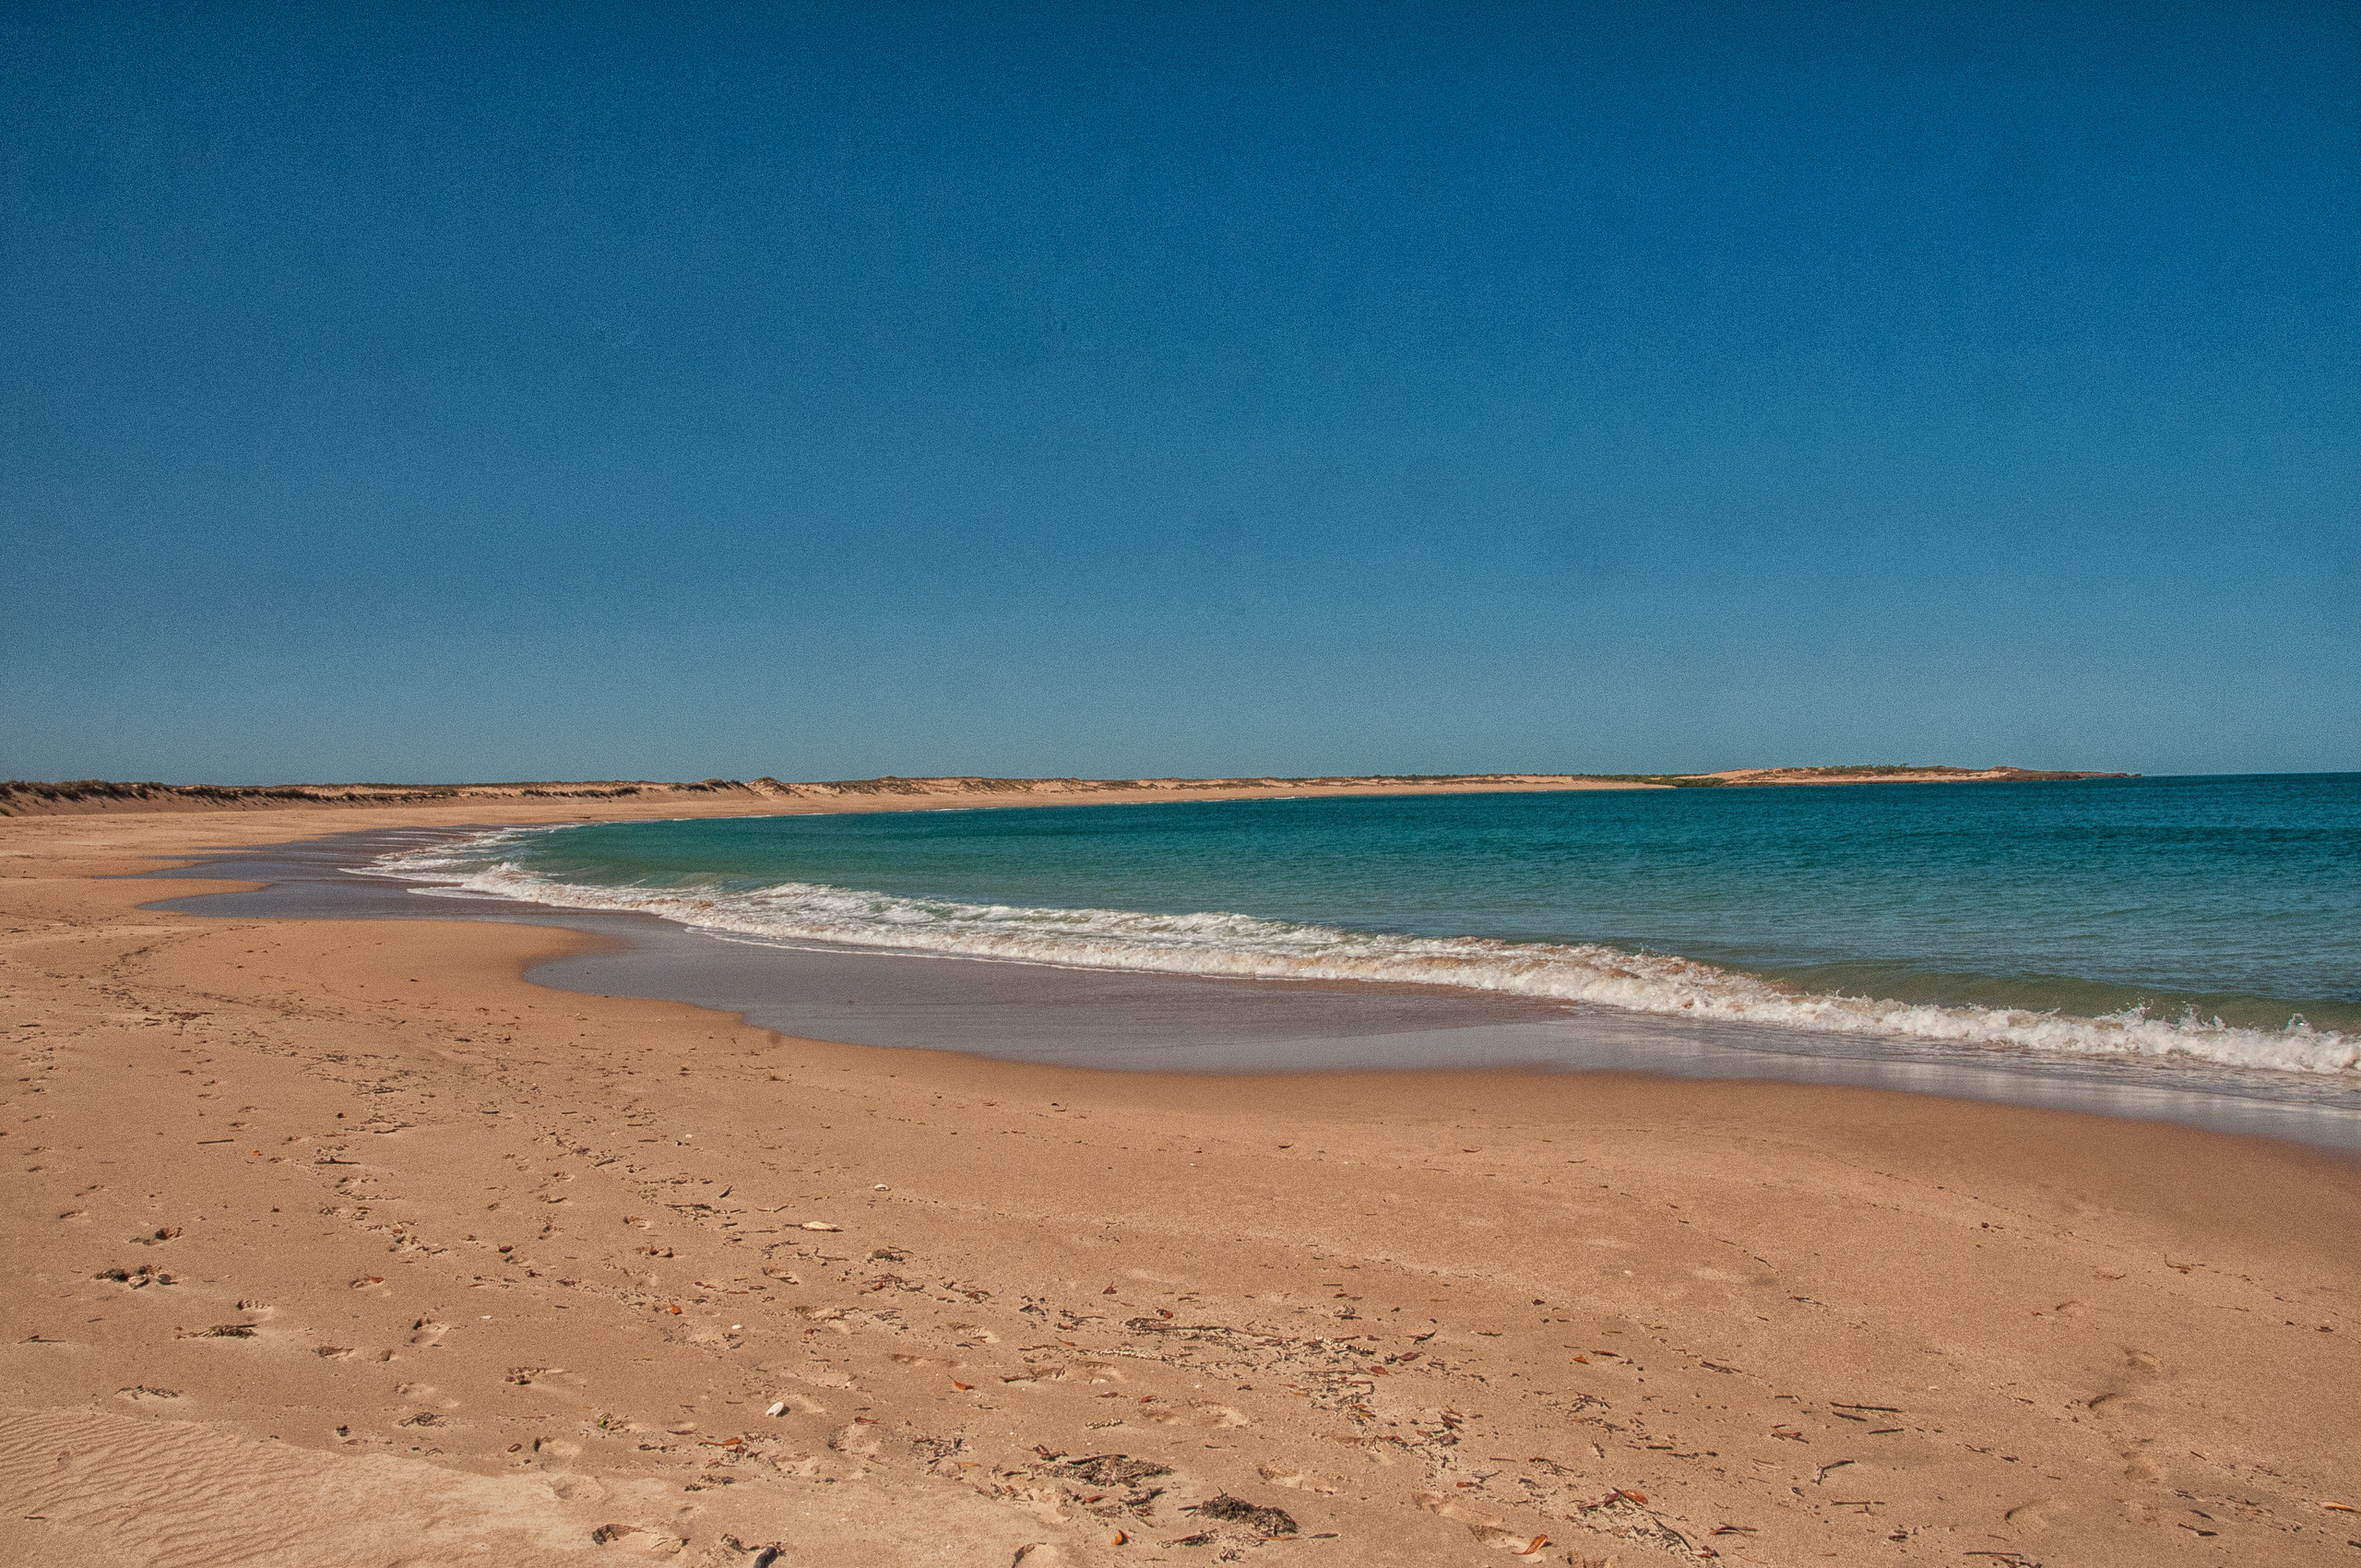 The beach at Middle Lagoon